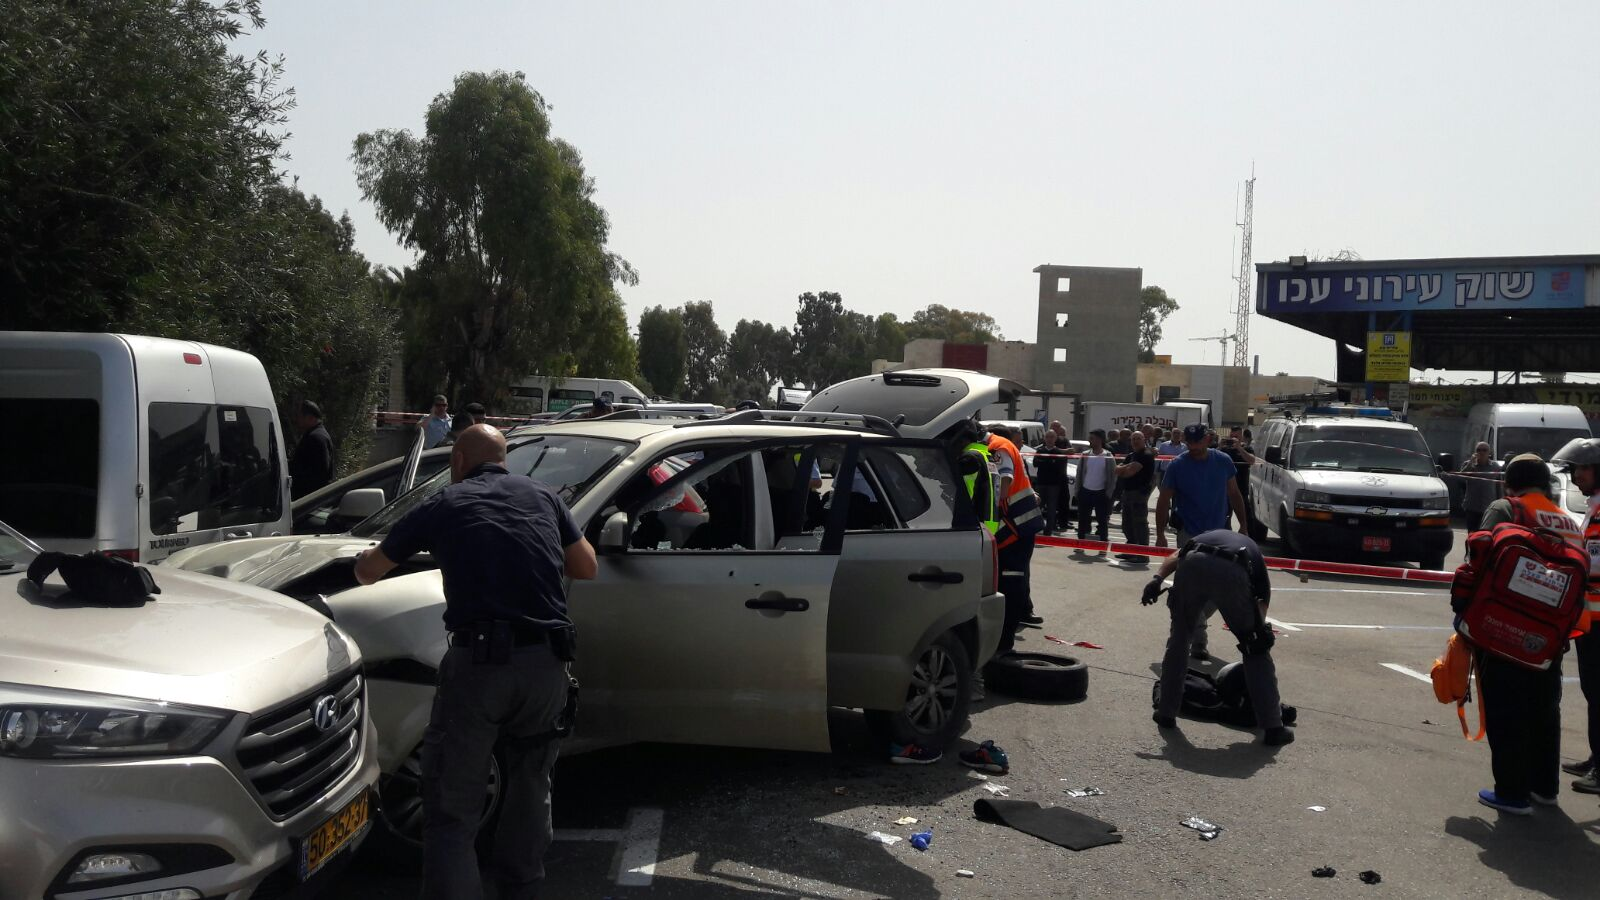 3 injured in car-ramming attack in northern Israel